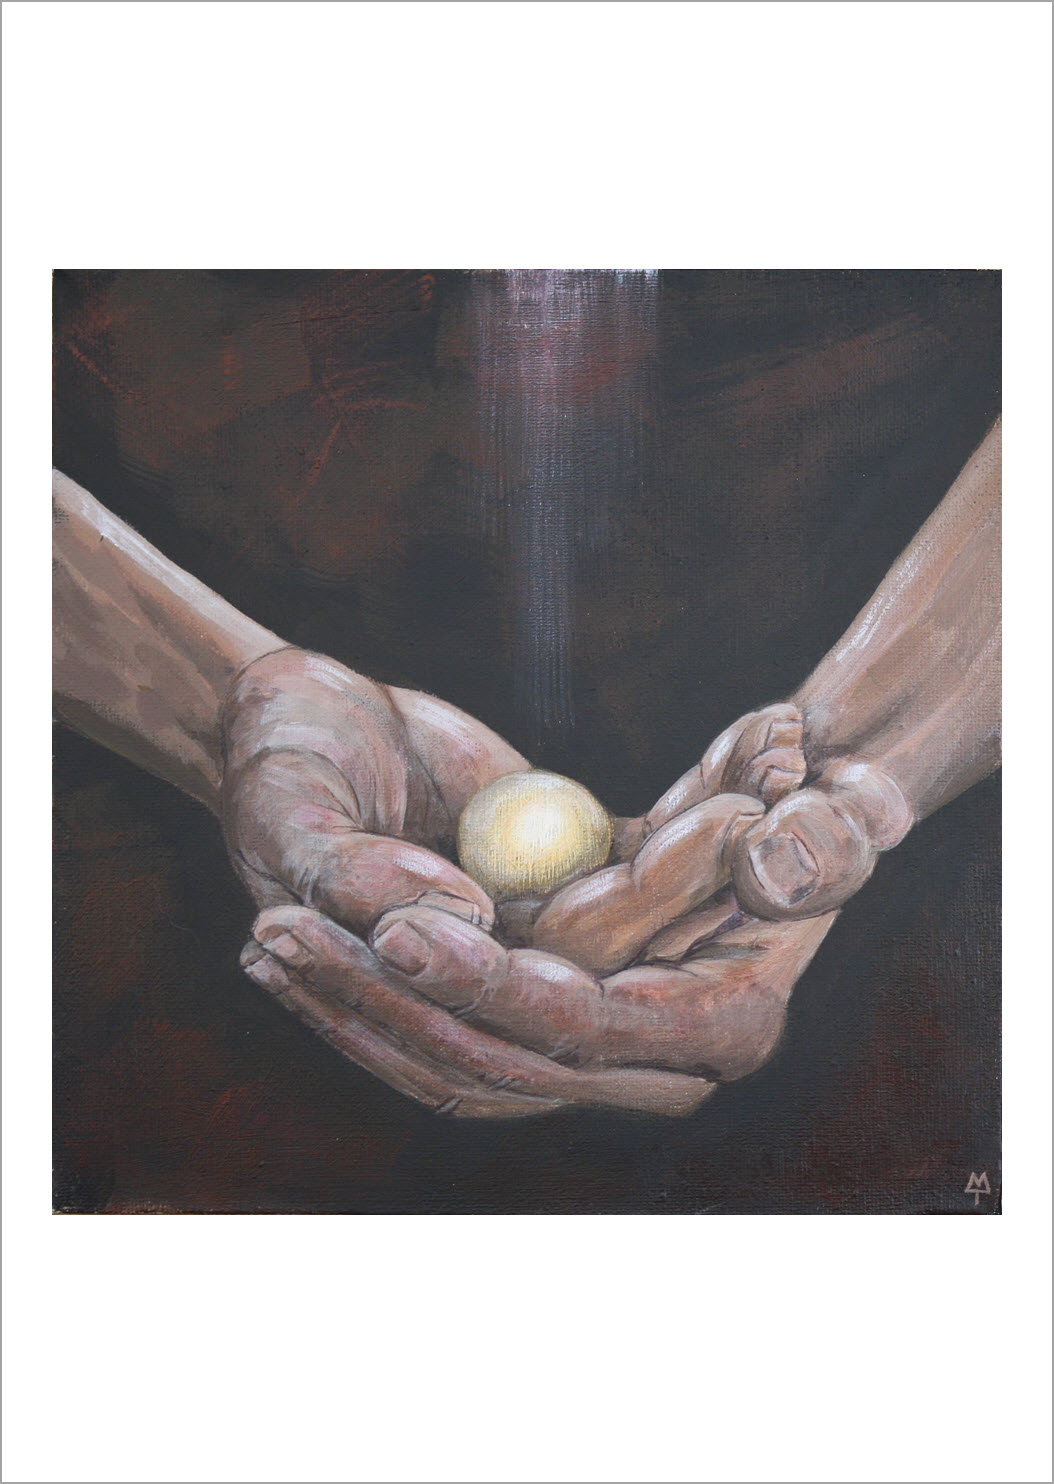 """29. I Know You - Triptych I  """"Before I formed you in the womb I knew you, before you were born I set you apart; I appointed you as a prophet to the nations.""""  Jeremiah 1:5 New International Version (NIV)"""